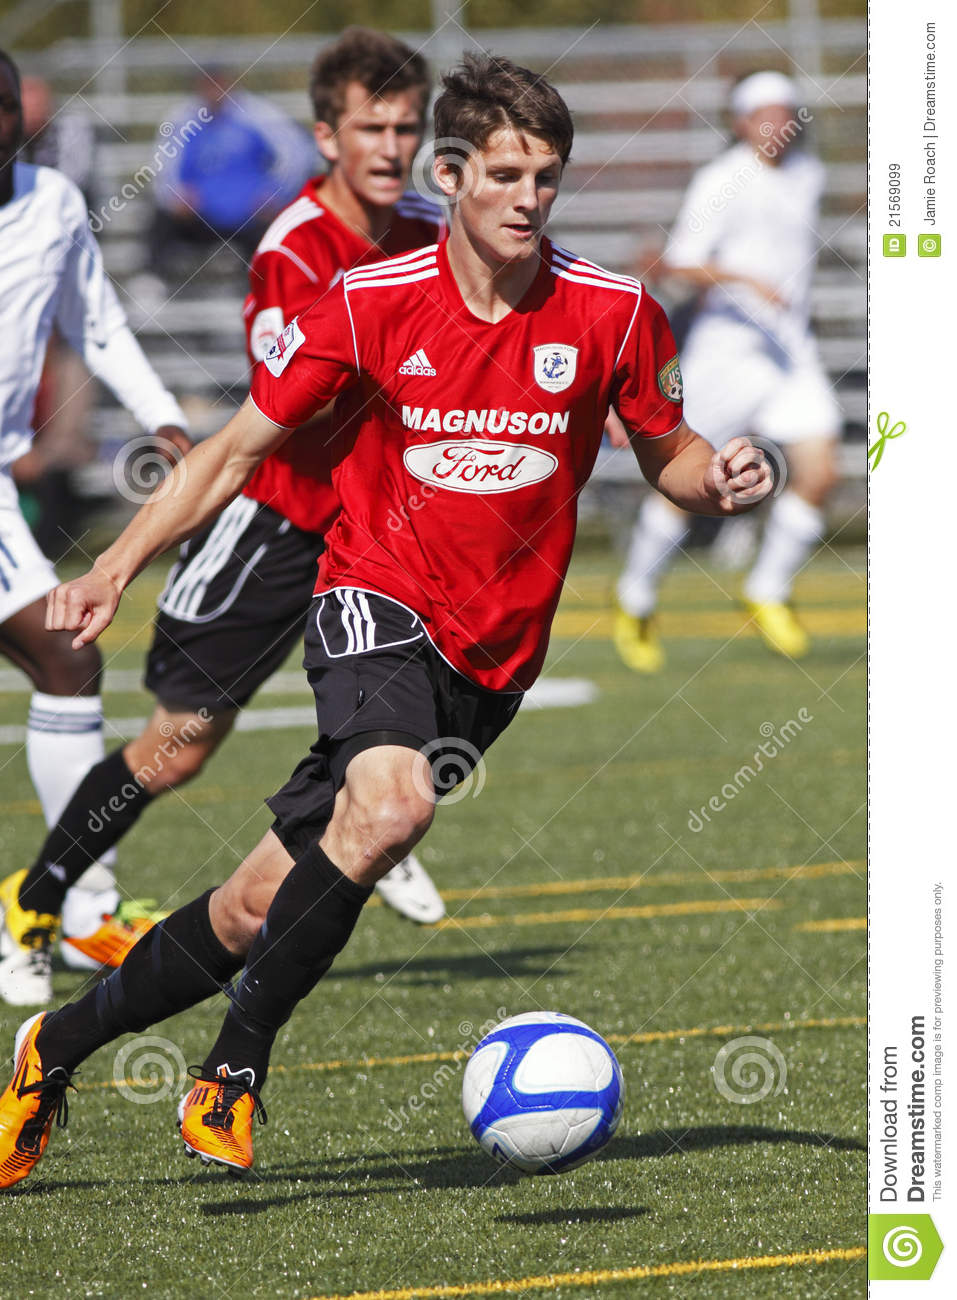 how to become a soccer player in canada